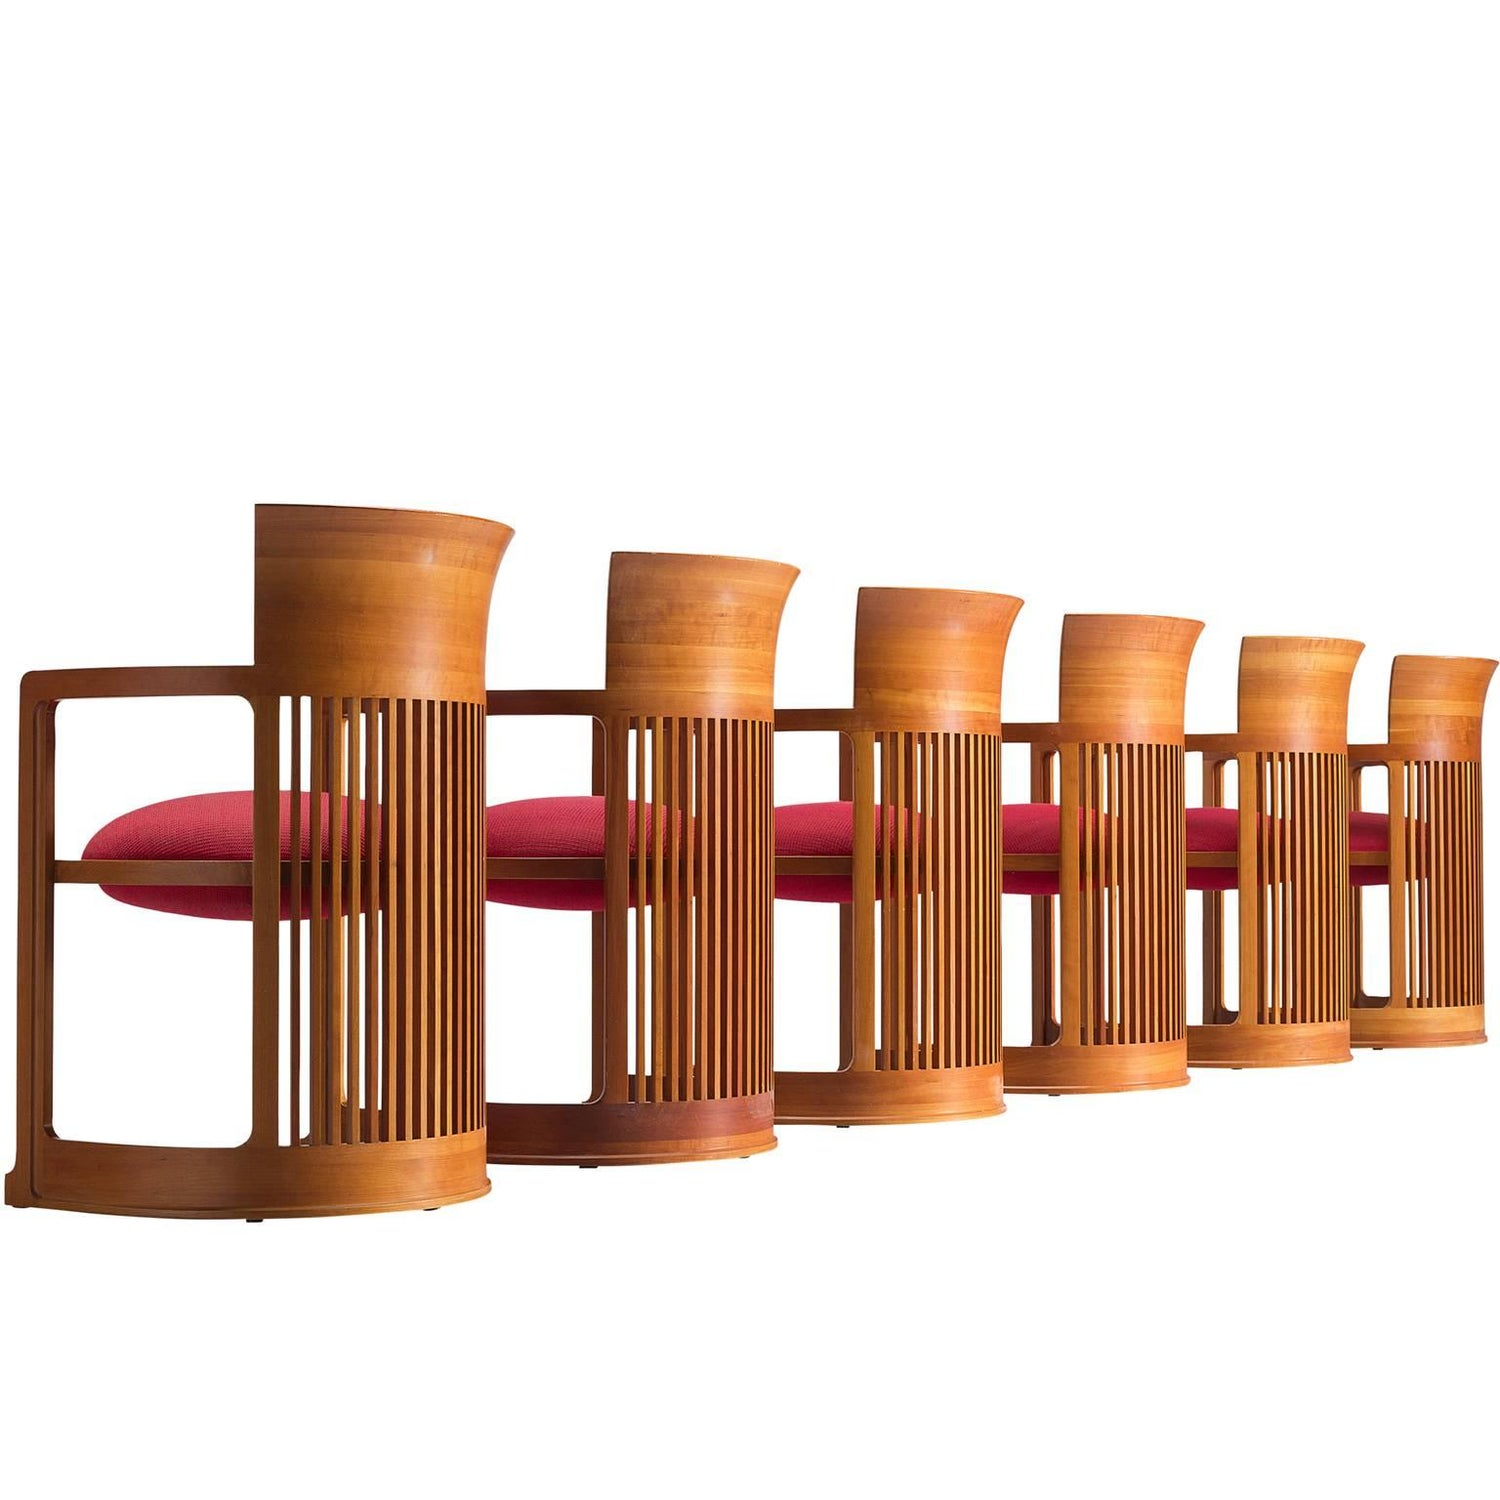 Frank Lloyd Wright Cherry Barrel Chairs for Cassina. Frank Lloyd Wright Furniture  Tables  Chairs  Sofas   More   65